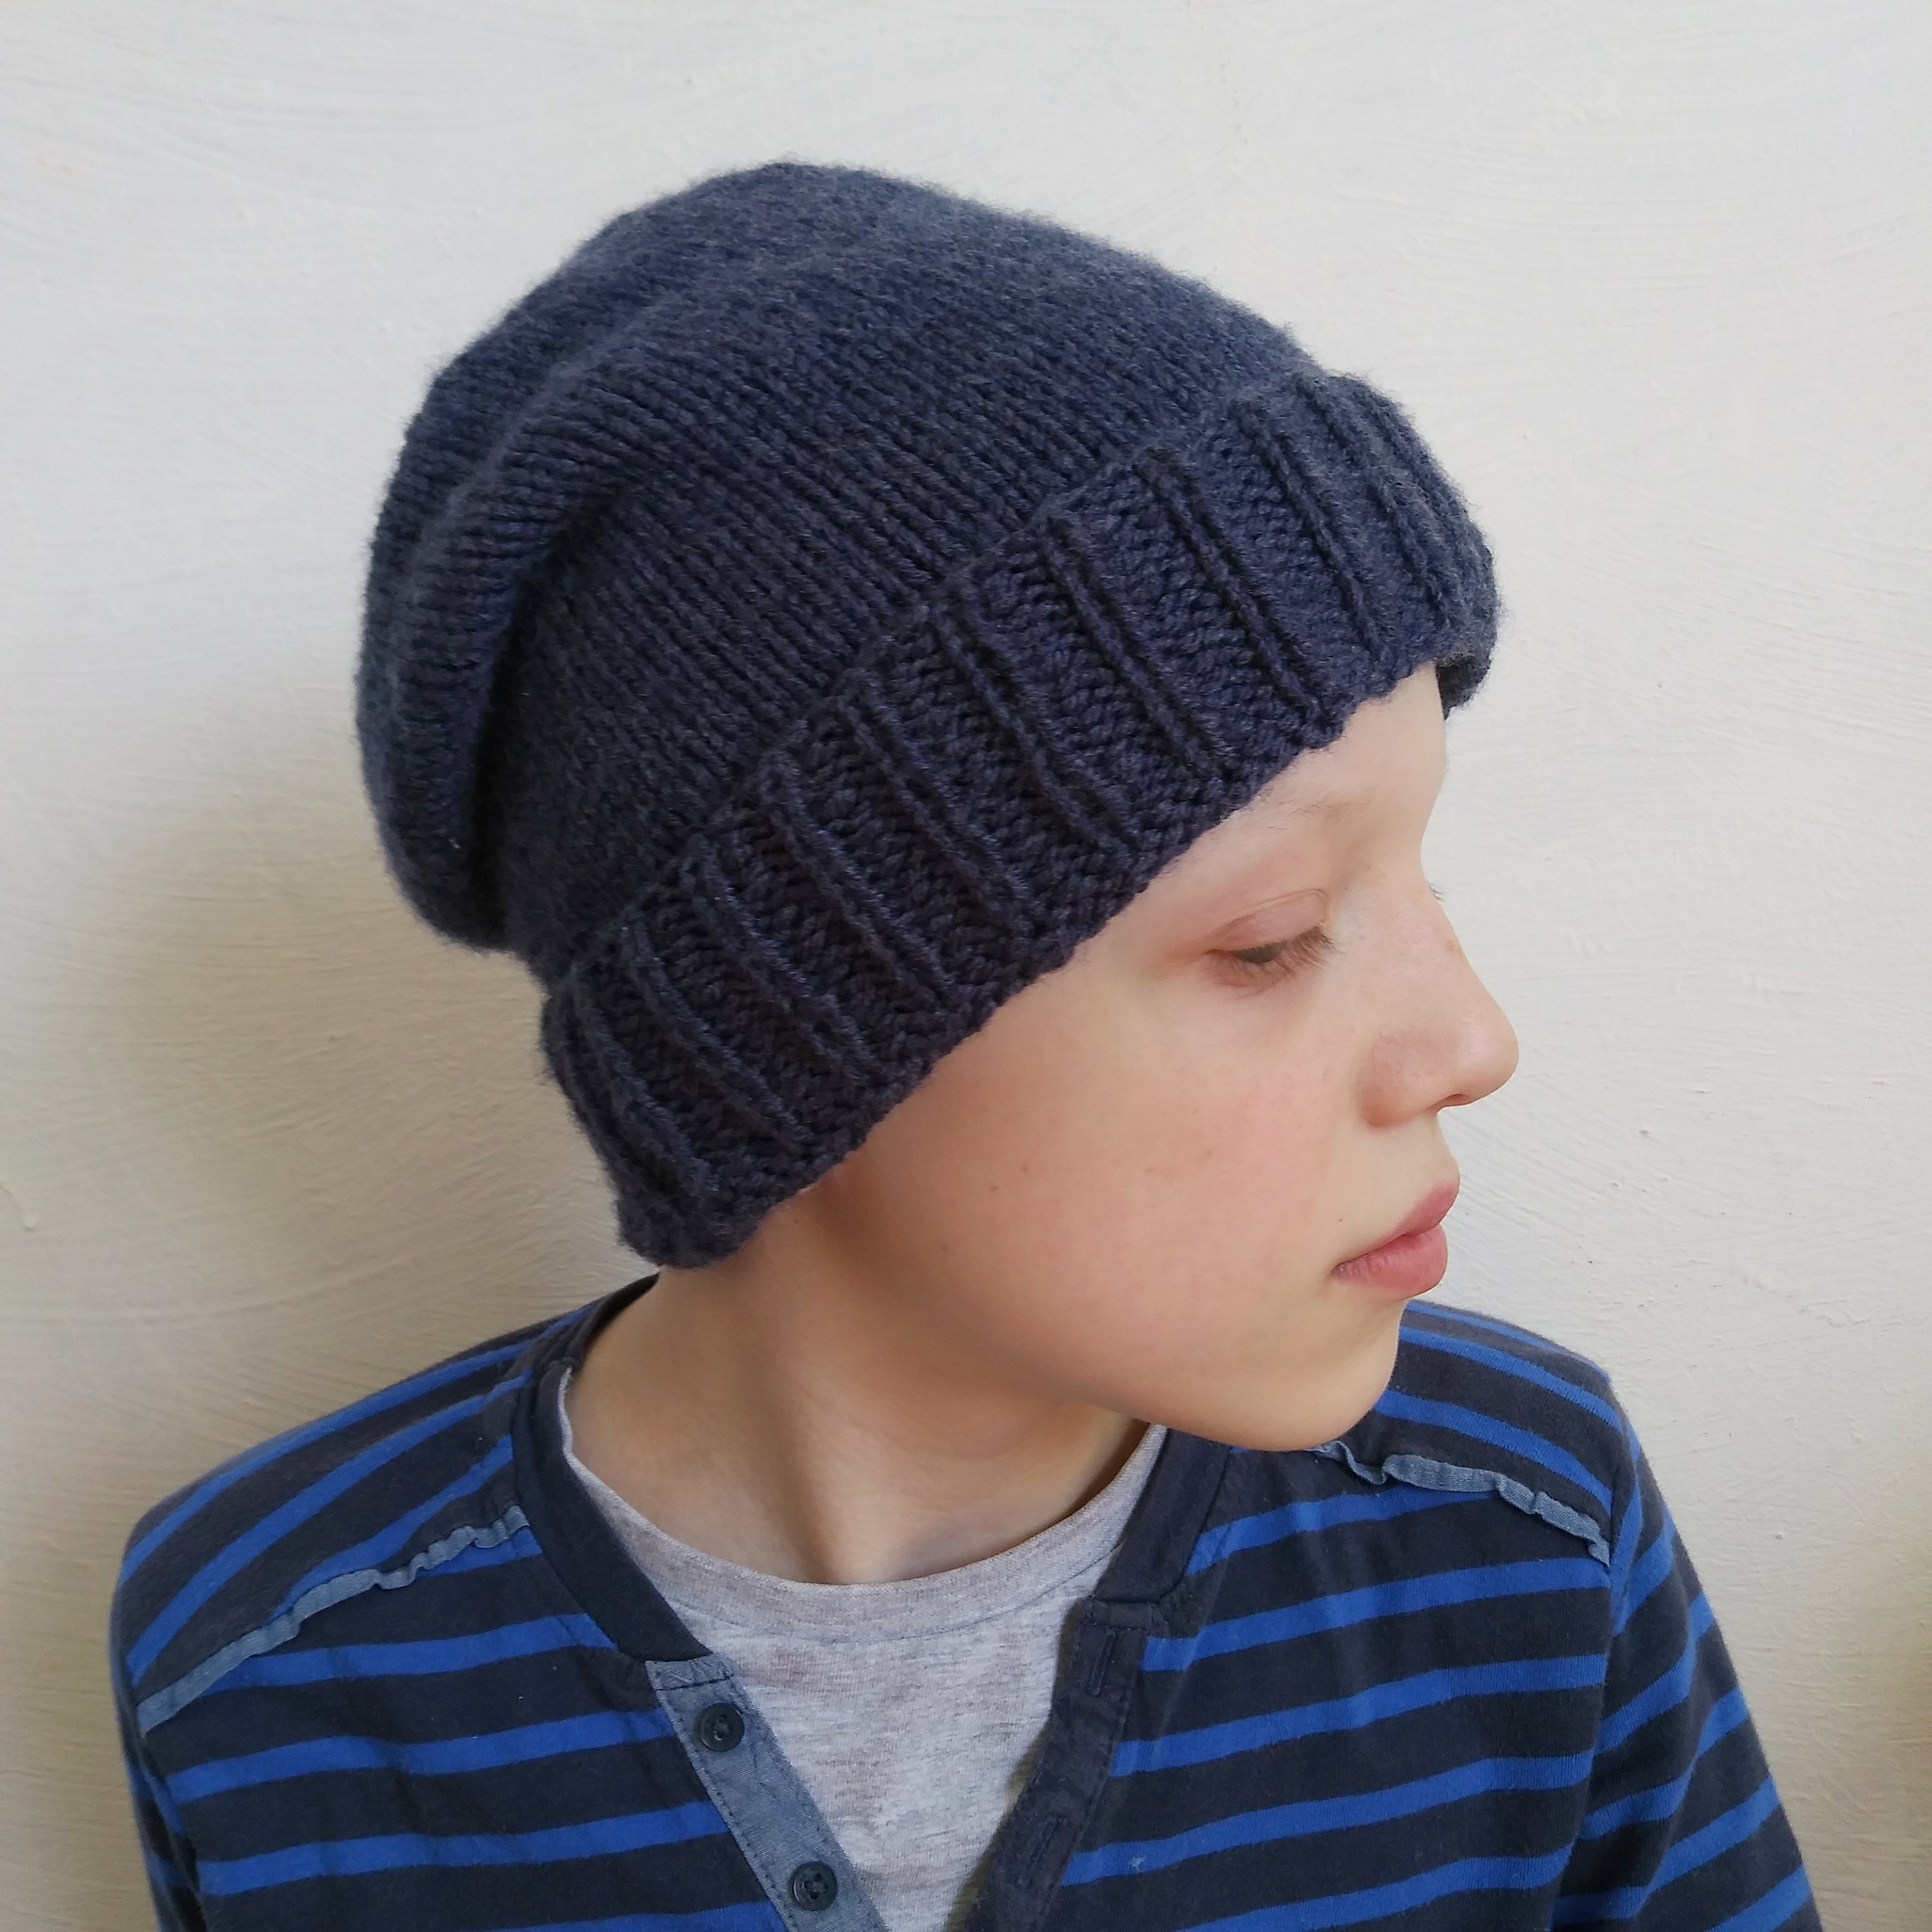 Knitted Mens Hat Patterns Pattern Mens Knitted Hat With Ribbed Edge Pattern Mens Hats Sizes Sm Lxl Hats Mens Patterns Knit Mens Beanies Patterns Mens Hat